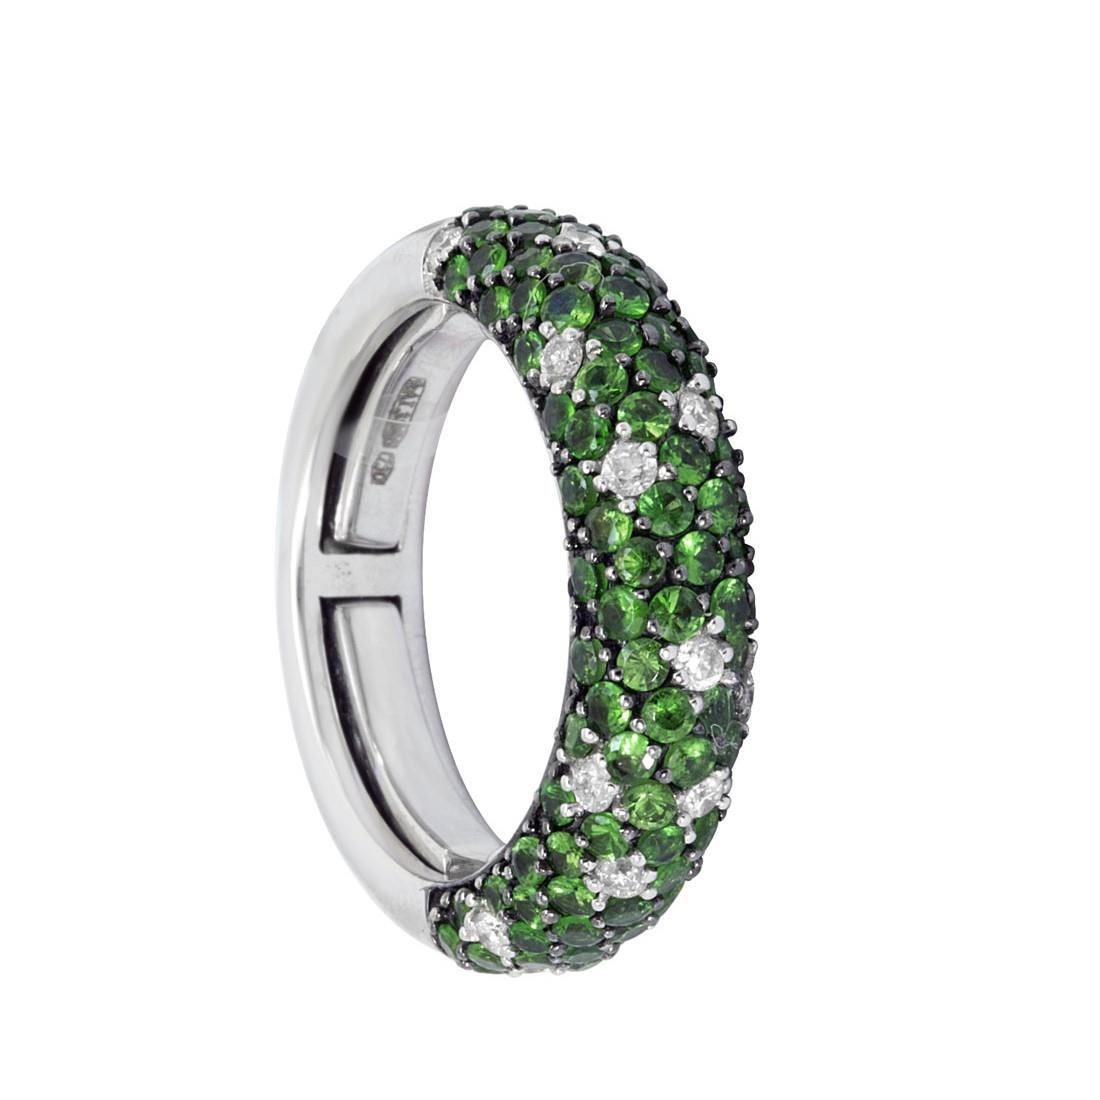 Anello eternity in oro bianco con diamanti ct 0.30 e tsavorite ct 1.95 - ALFIERI ST JOHN